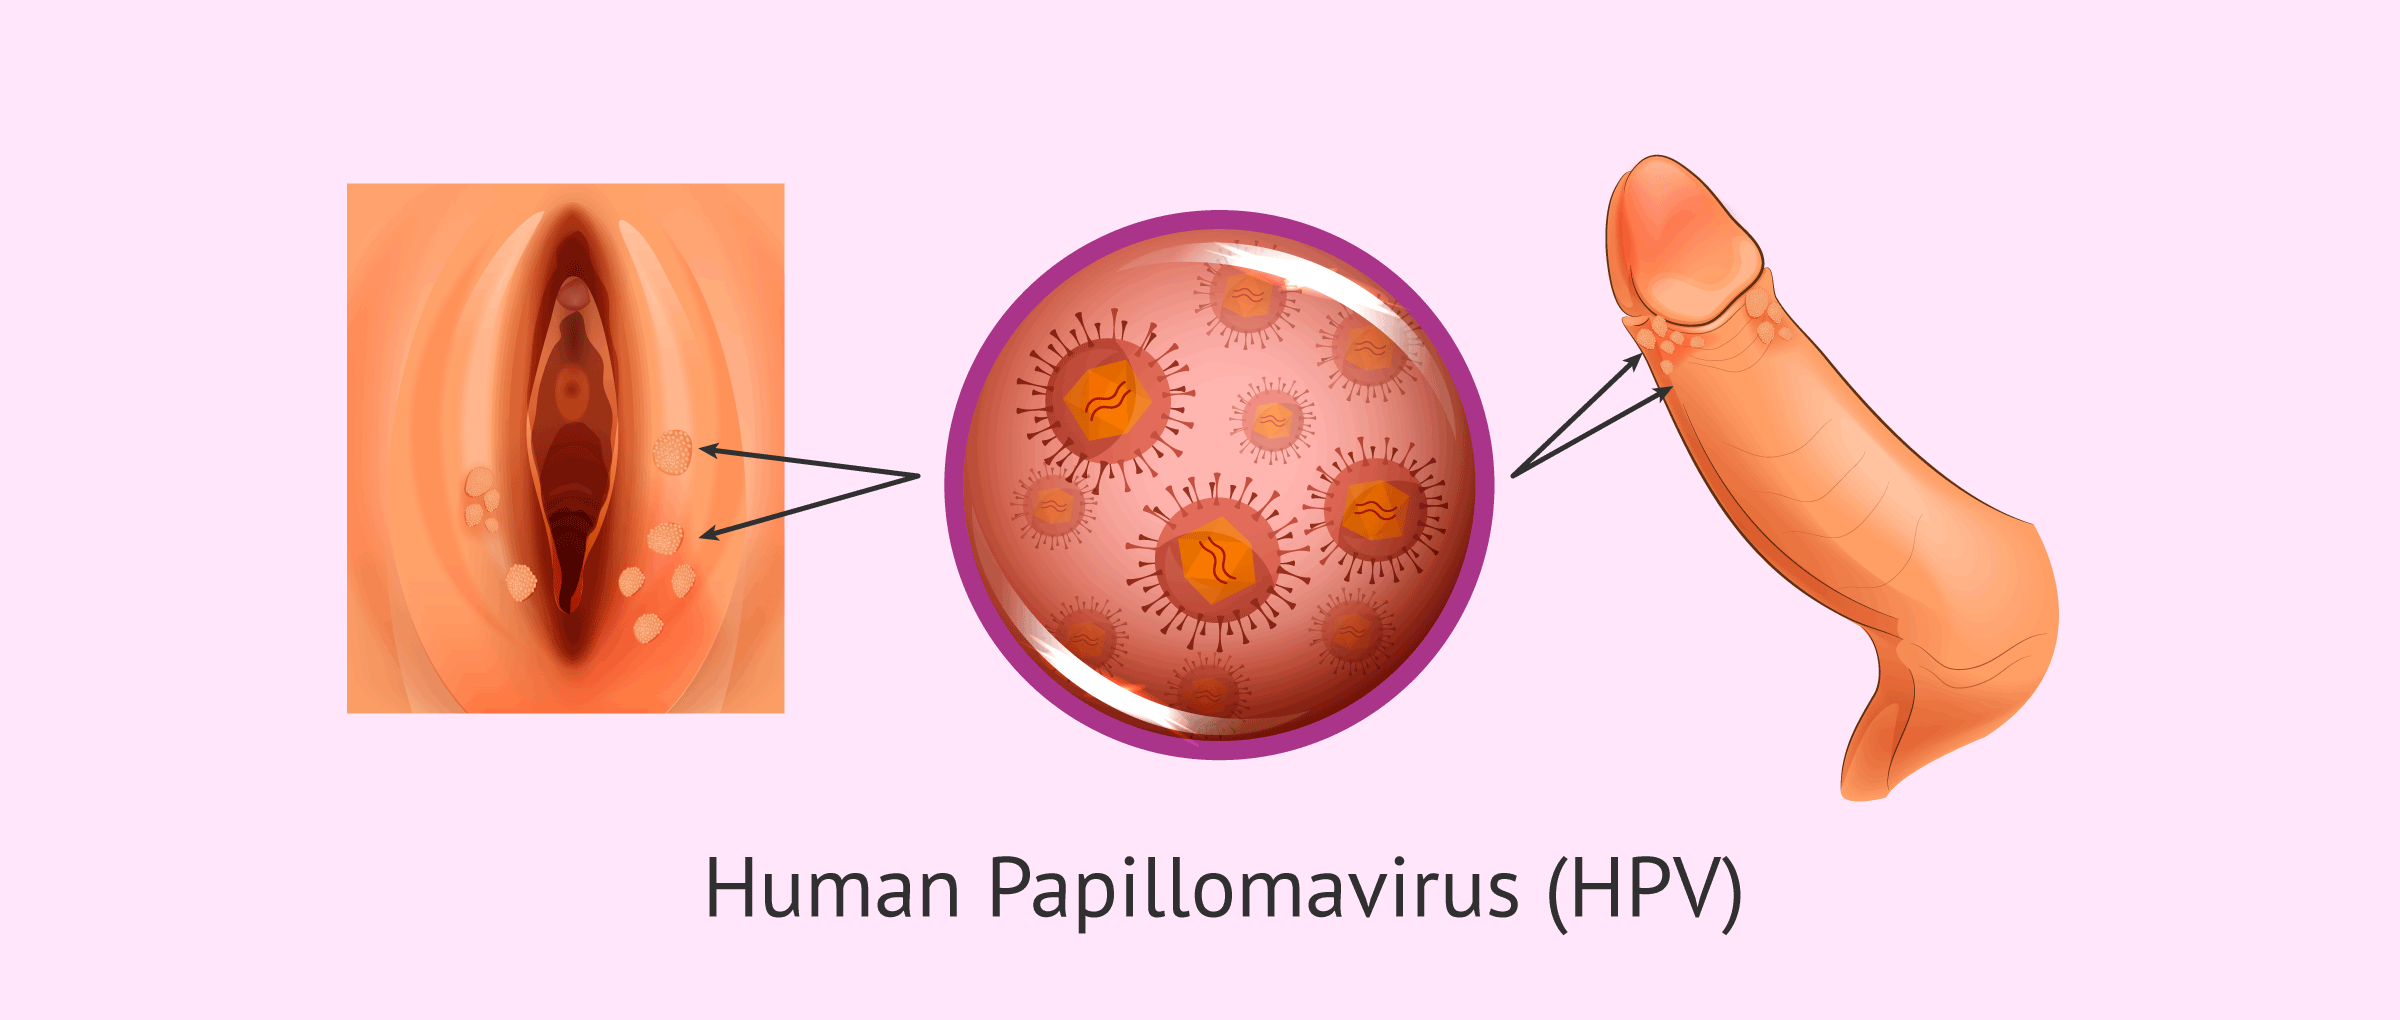 hpv that causes genital warts